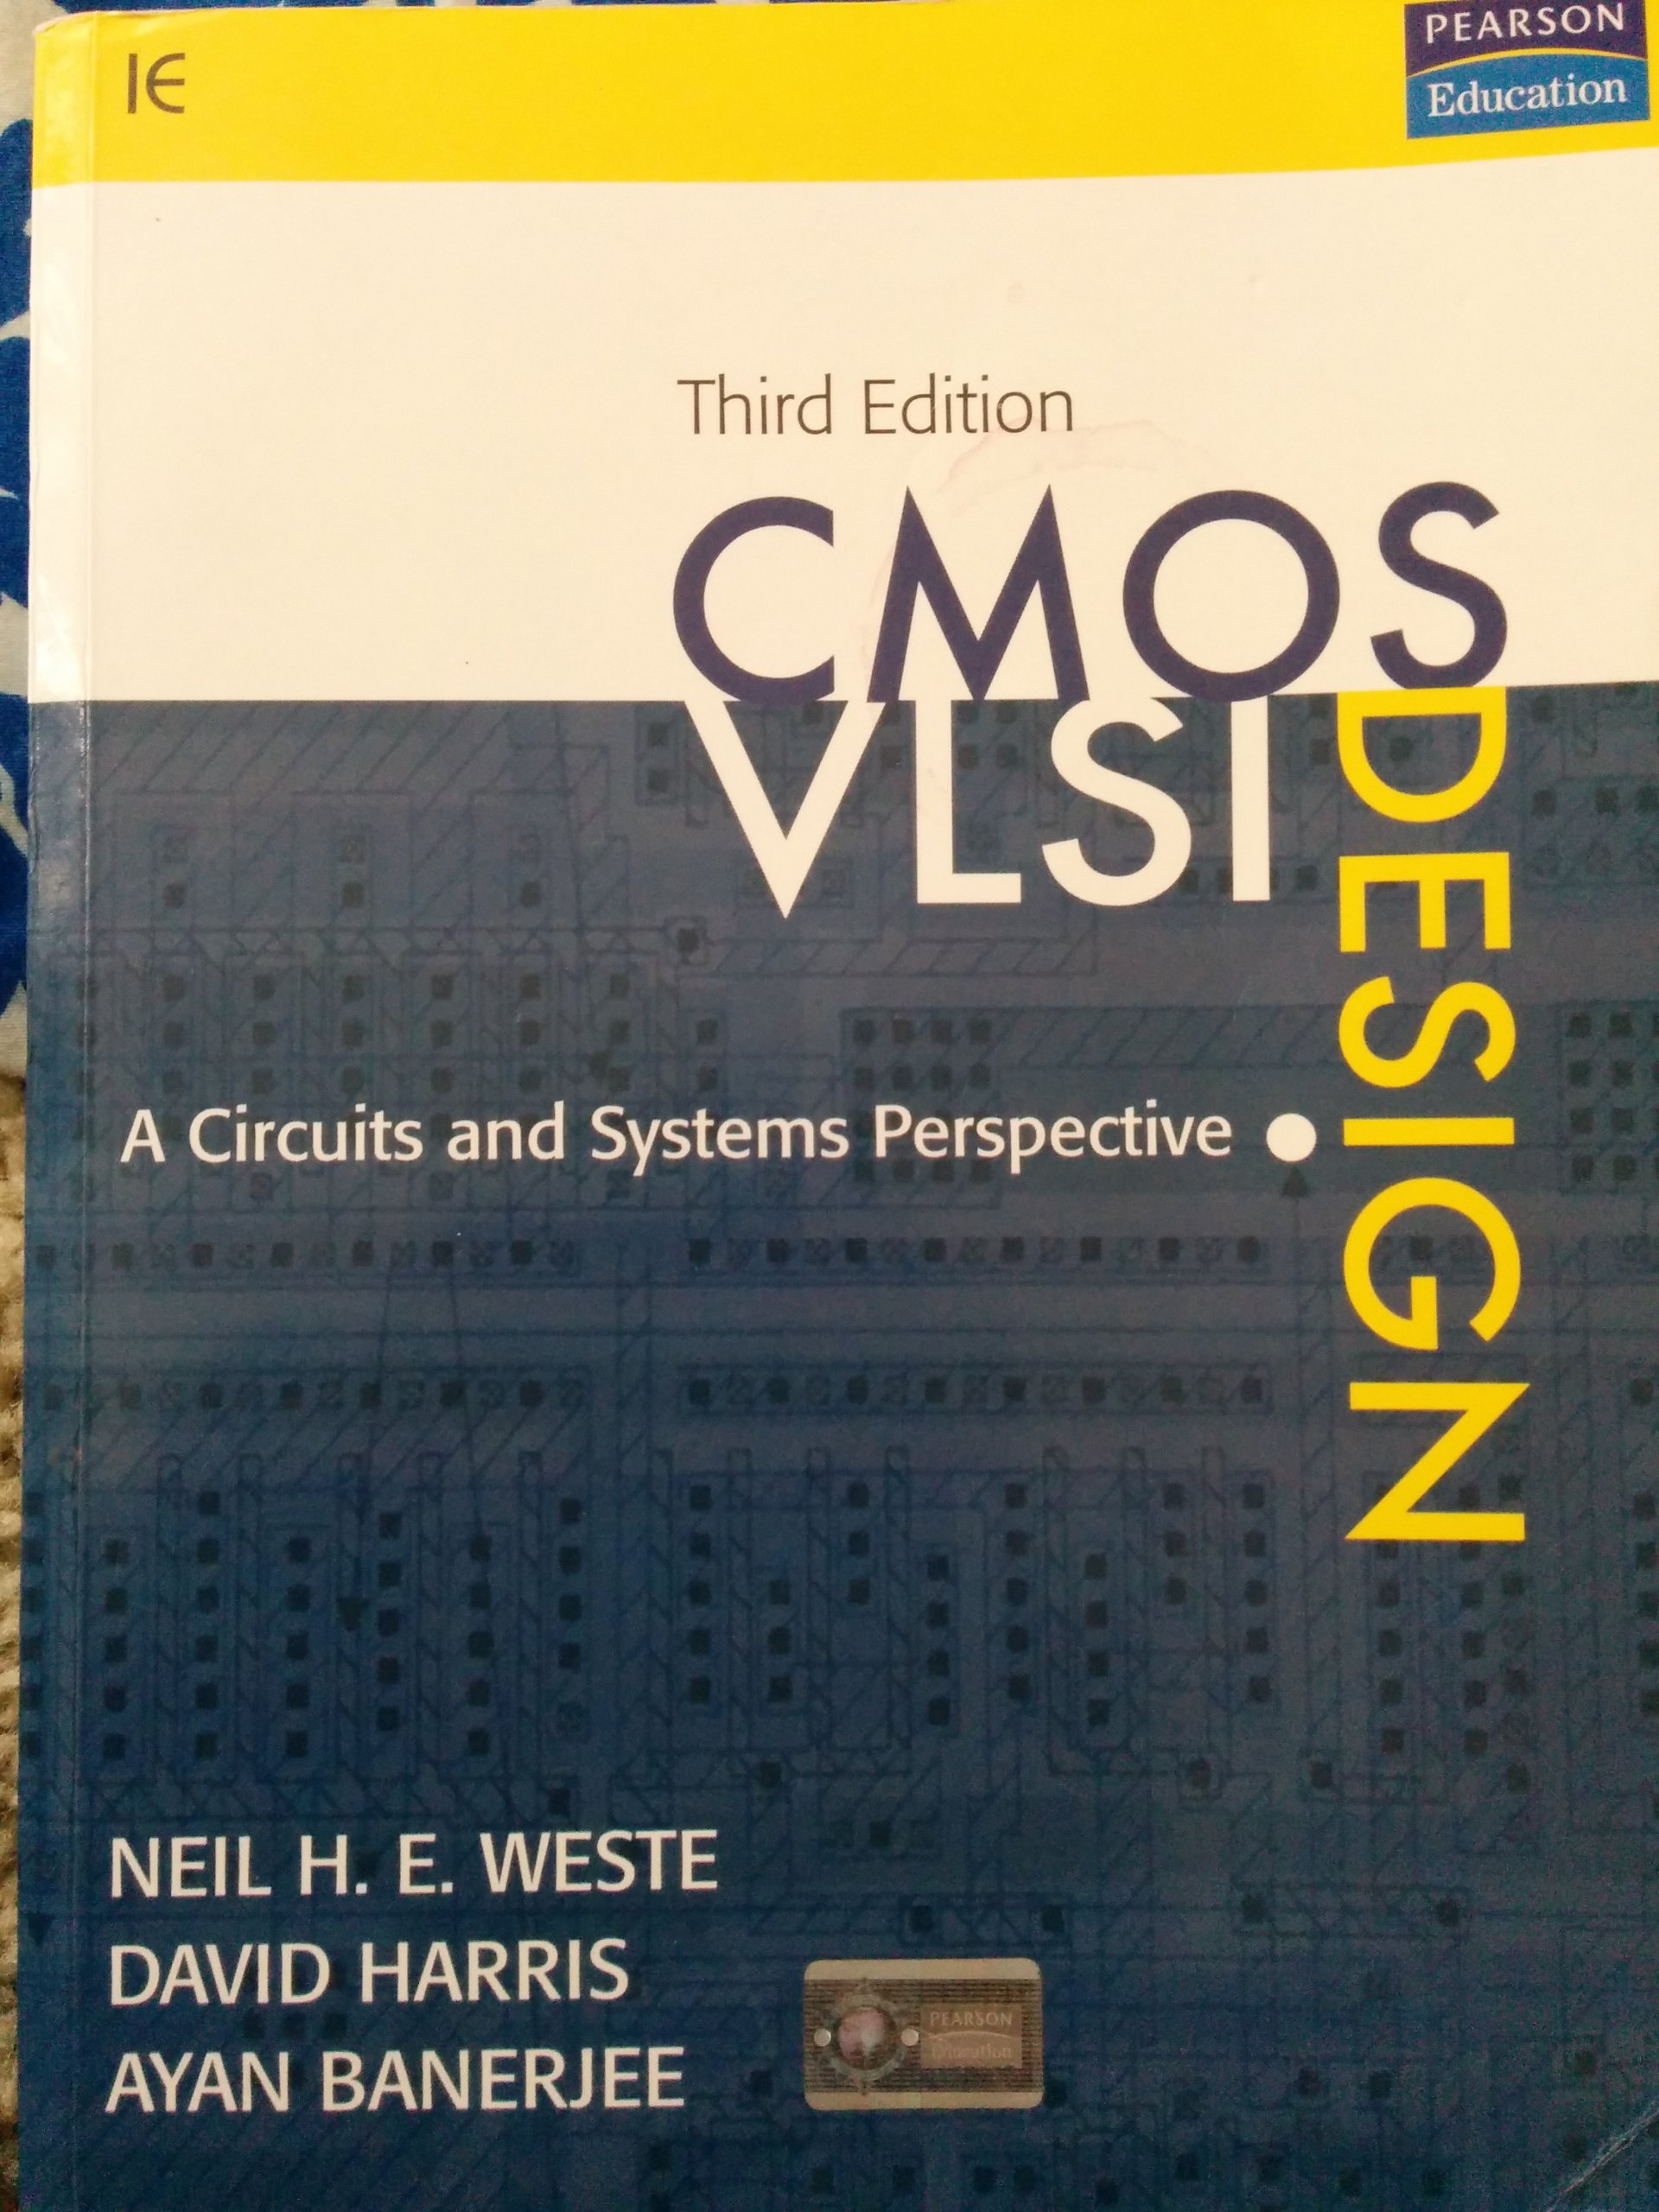 Buy Cmos Vlsi Design Ind Adap Old Edition Book Online At Low Circuits Prices In India Reviews Ratings